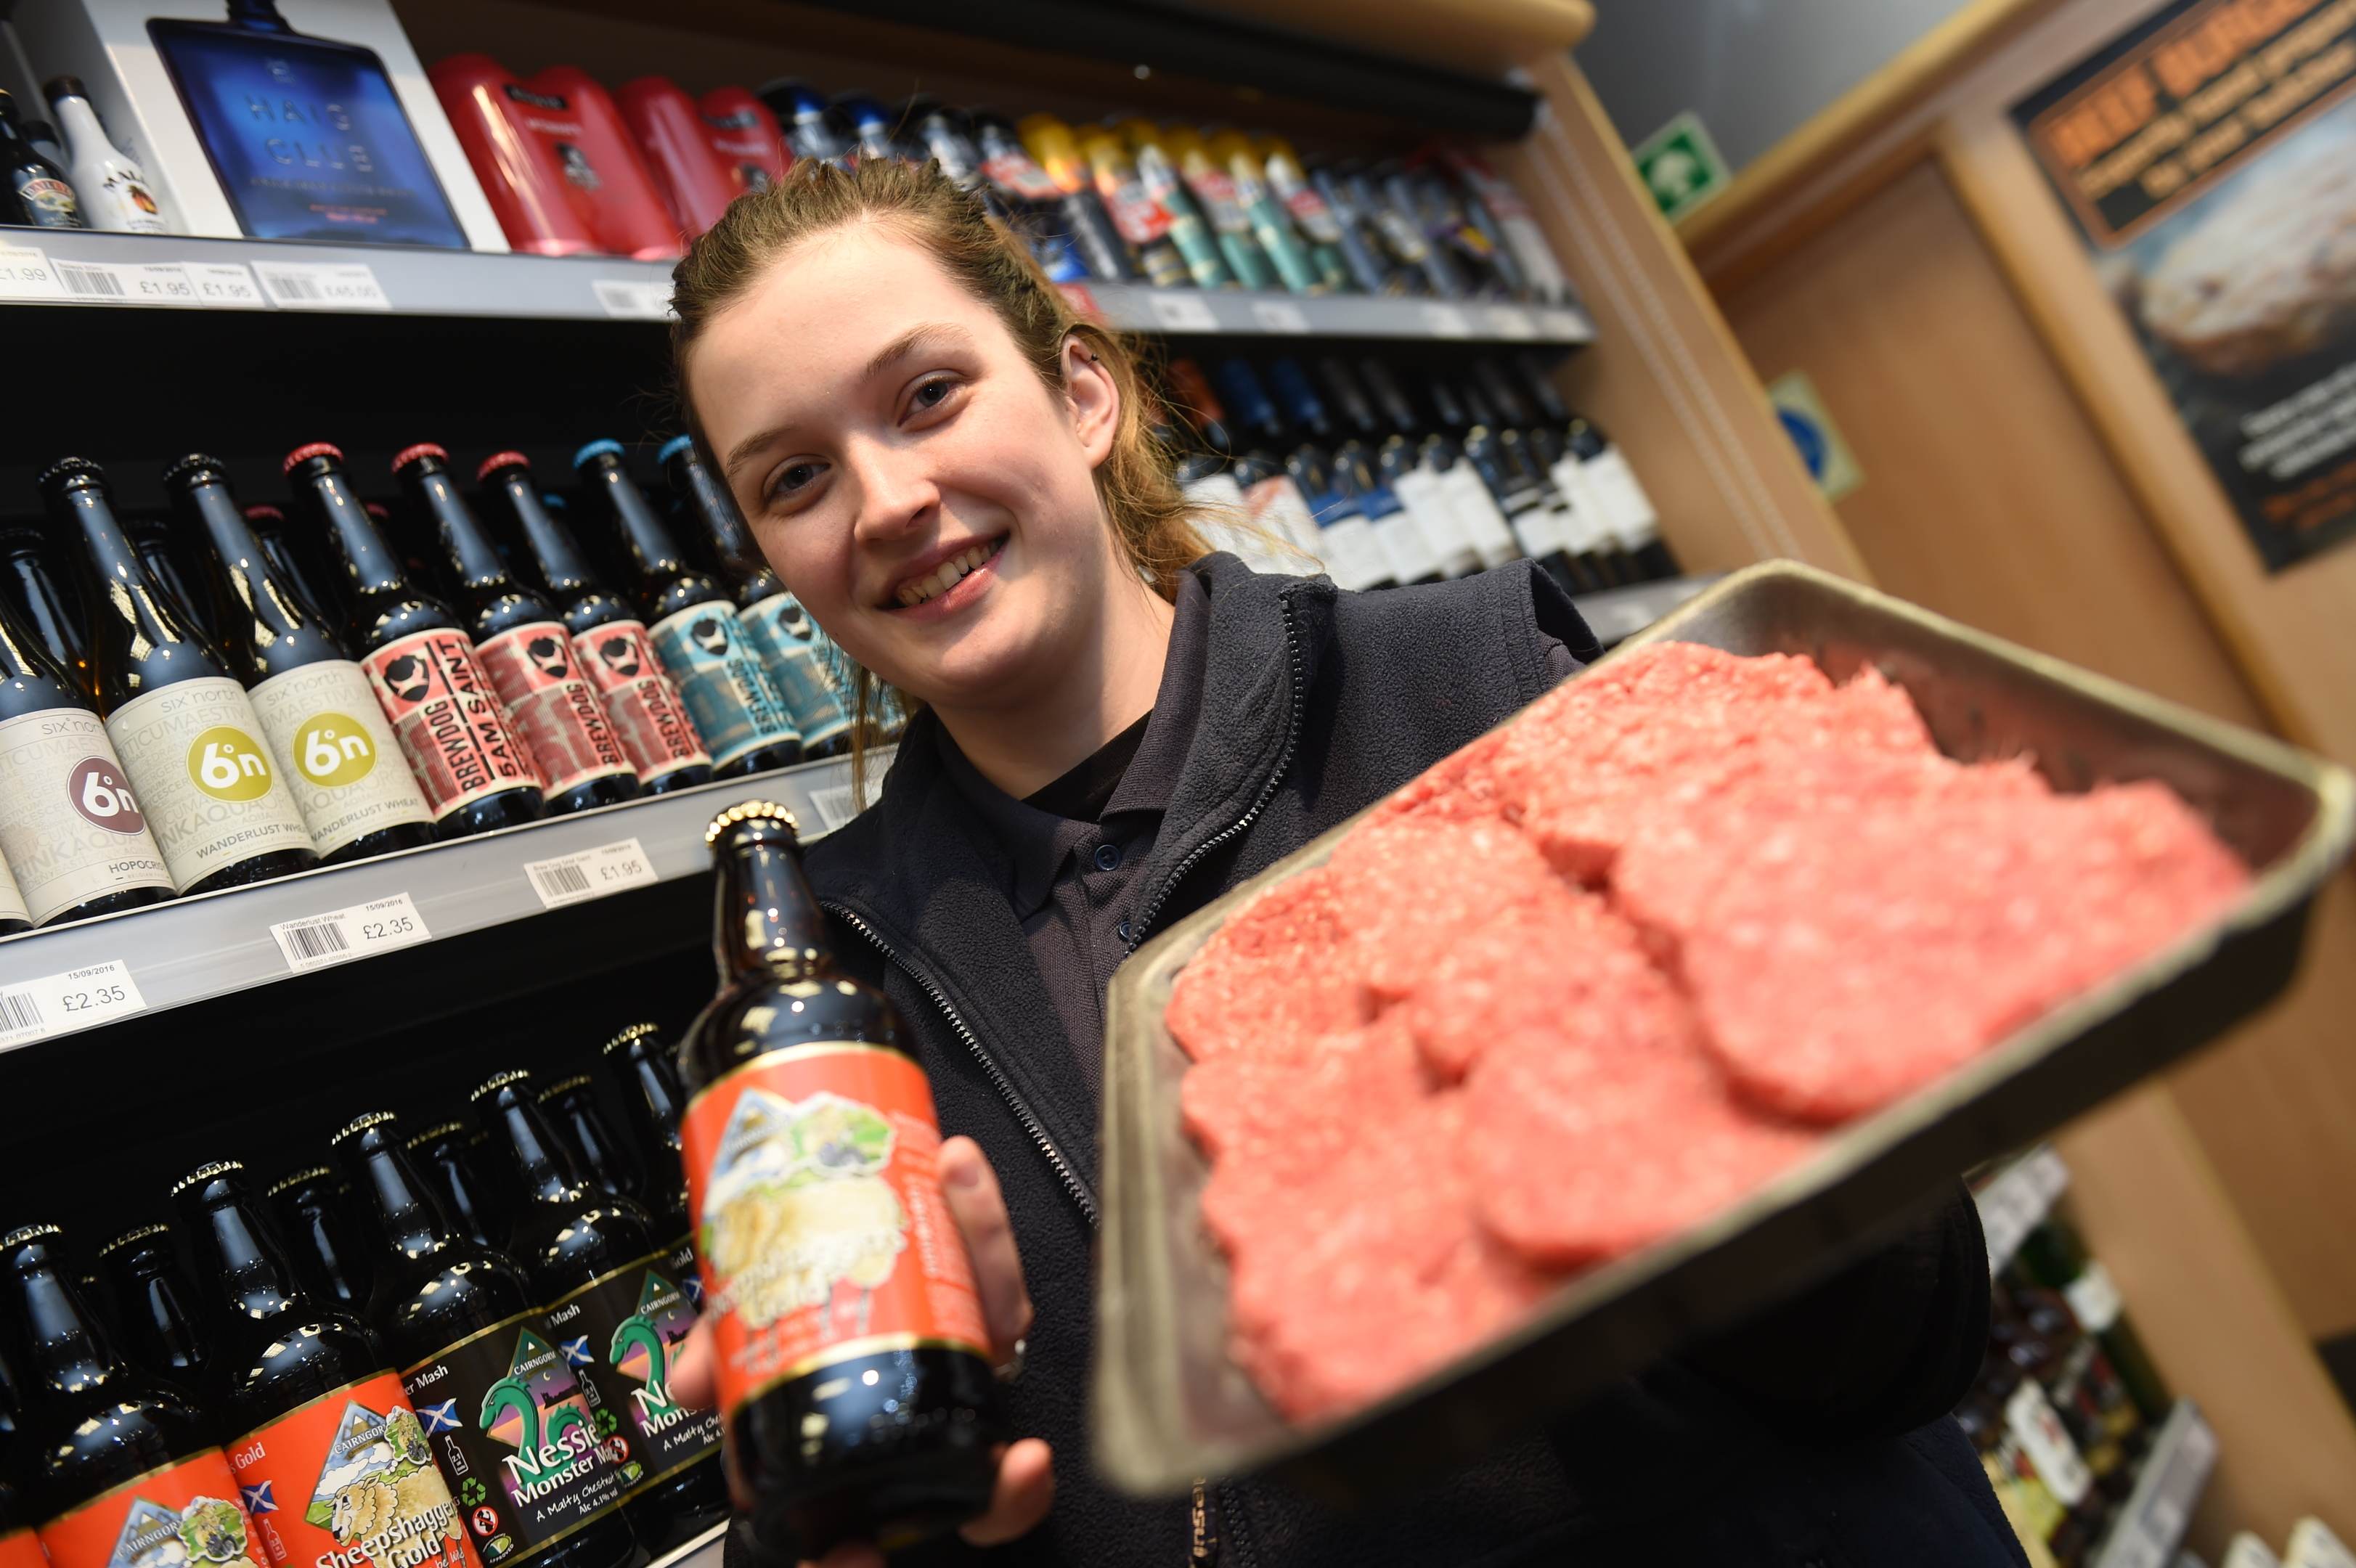 Erin Haig with the special Dons-themed burgers and the beer used to make them.